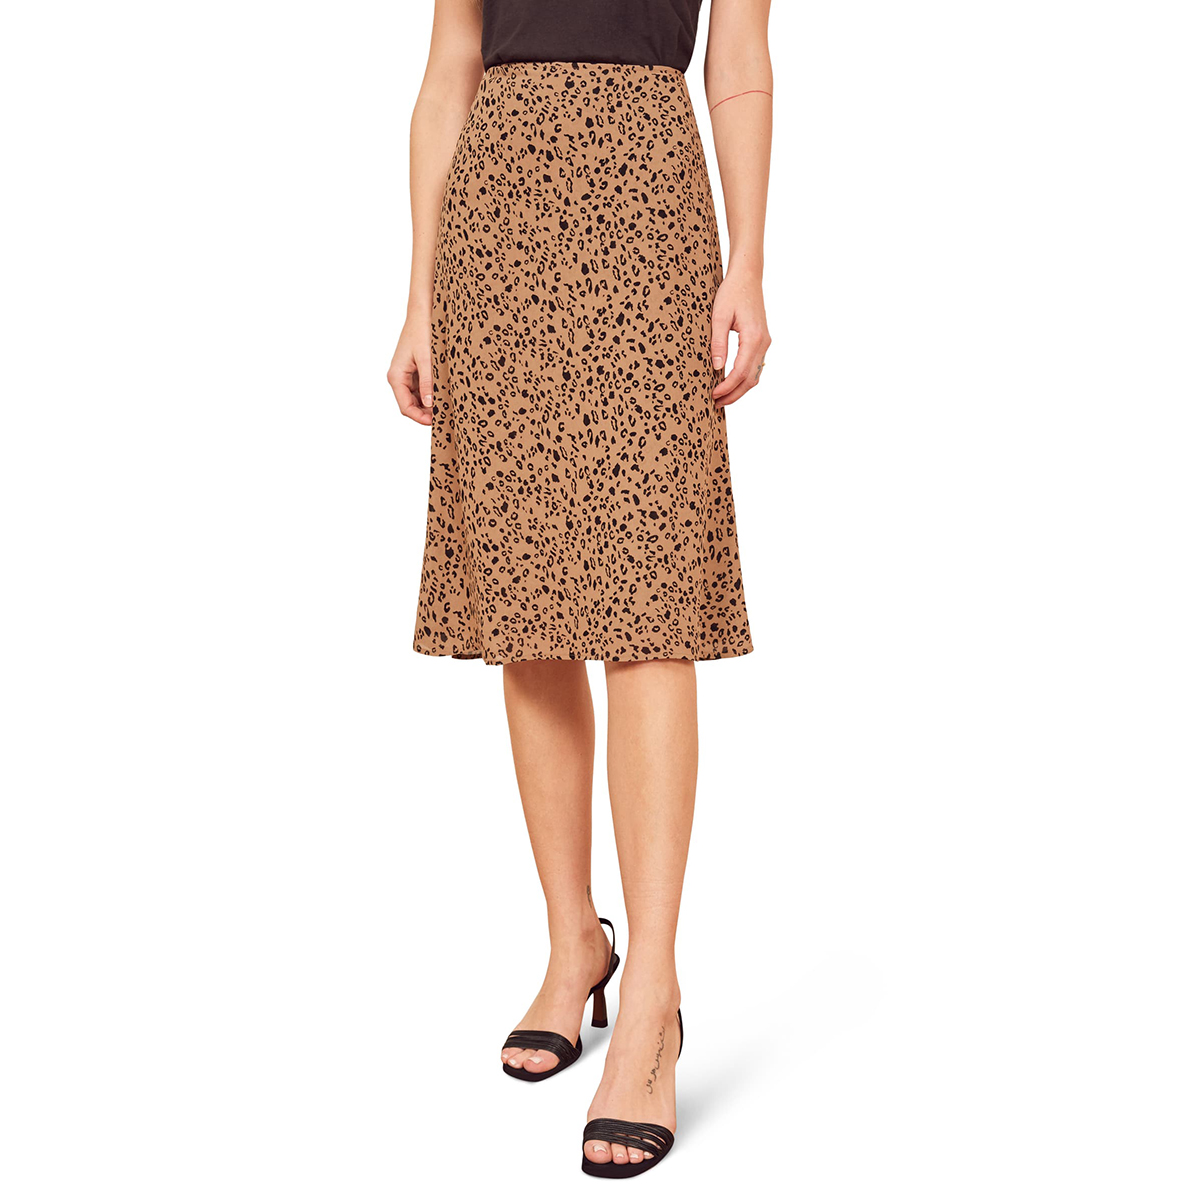 Reformation Mia Skirt